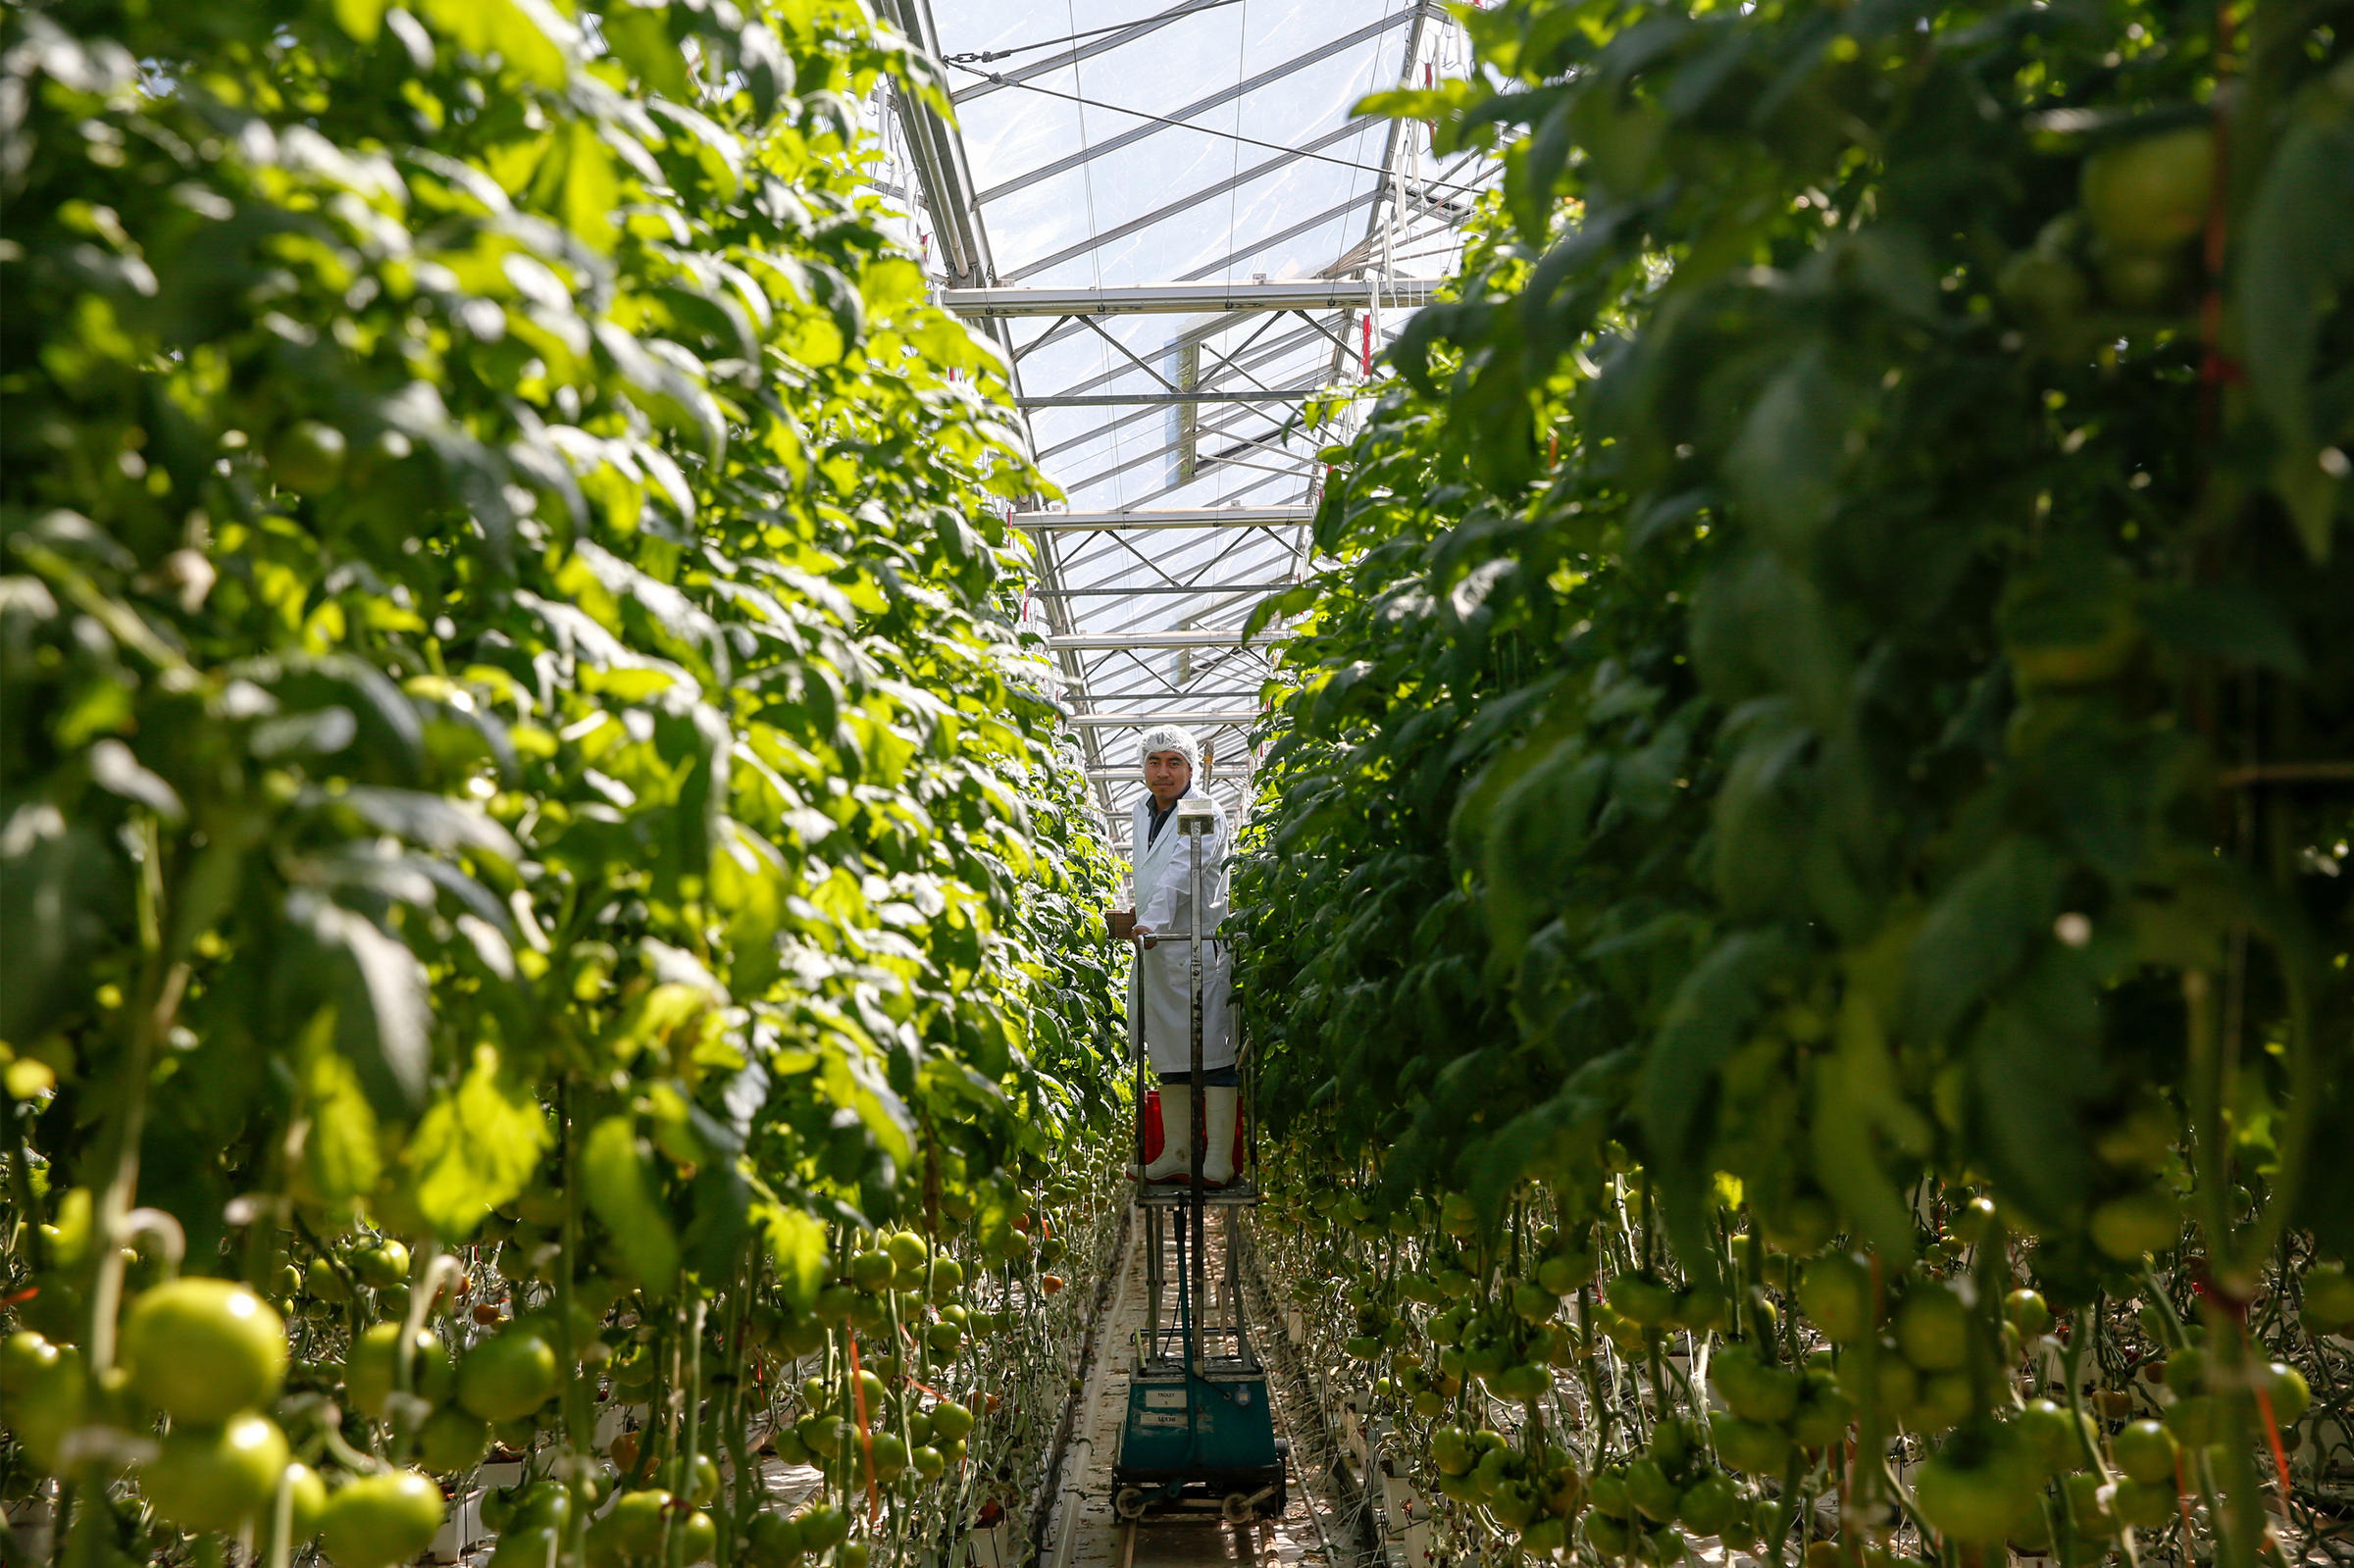 Fluid Fed Organic Tomatoes Grow In A Greenhouse Owned By Wholesum Harvest The Mexican State Of Sonora About 30 Miles From U S Border